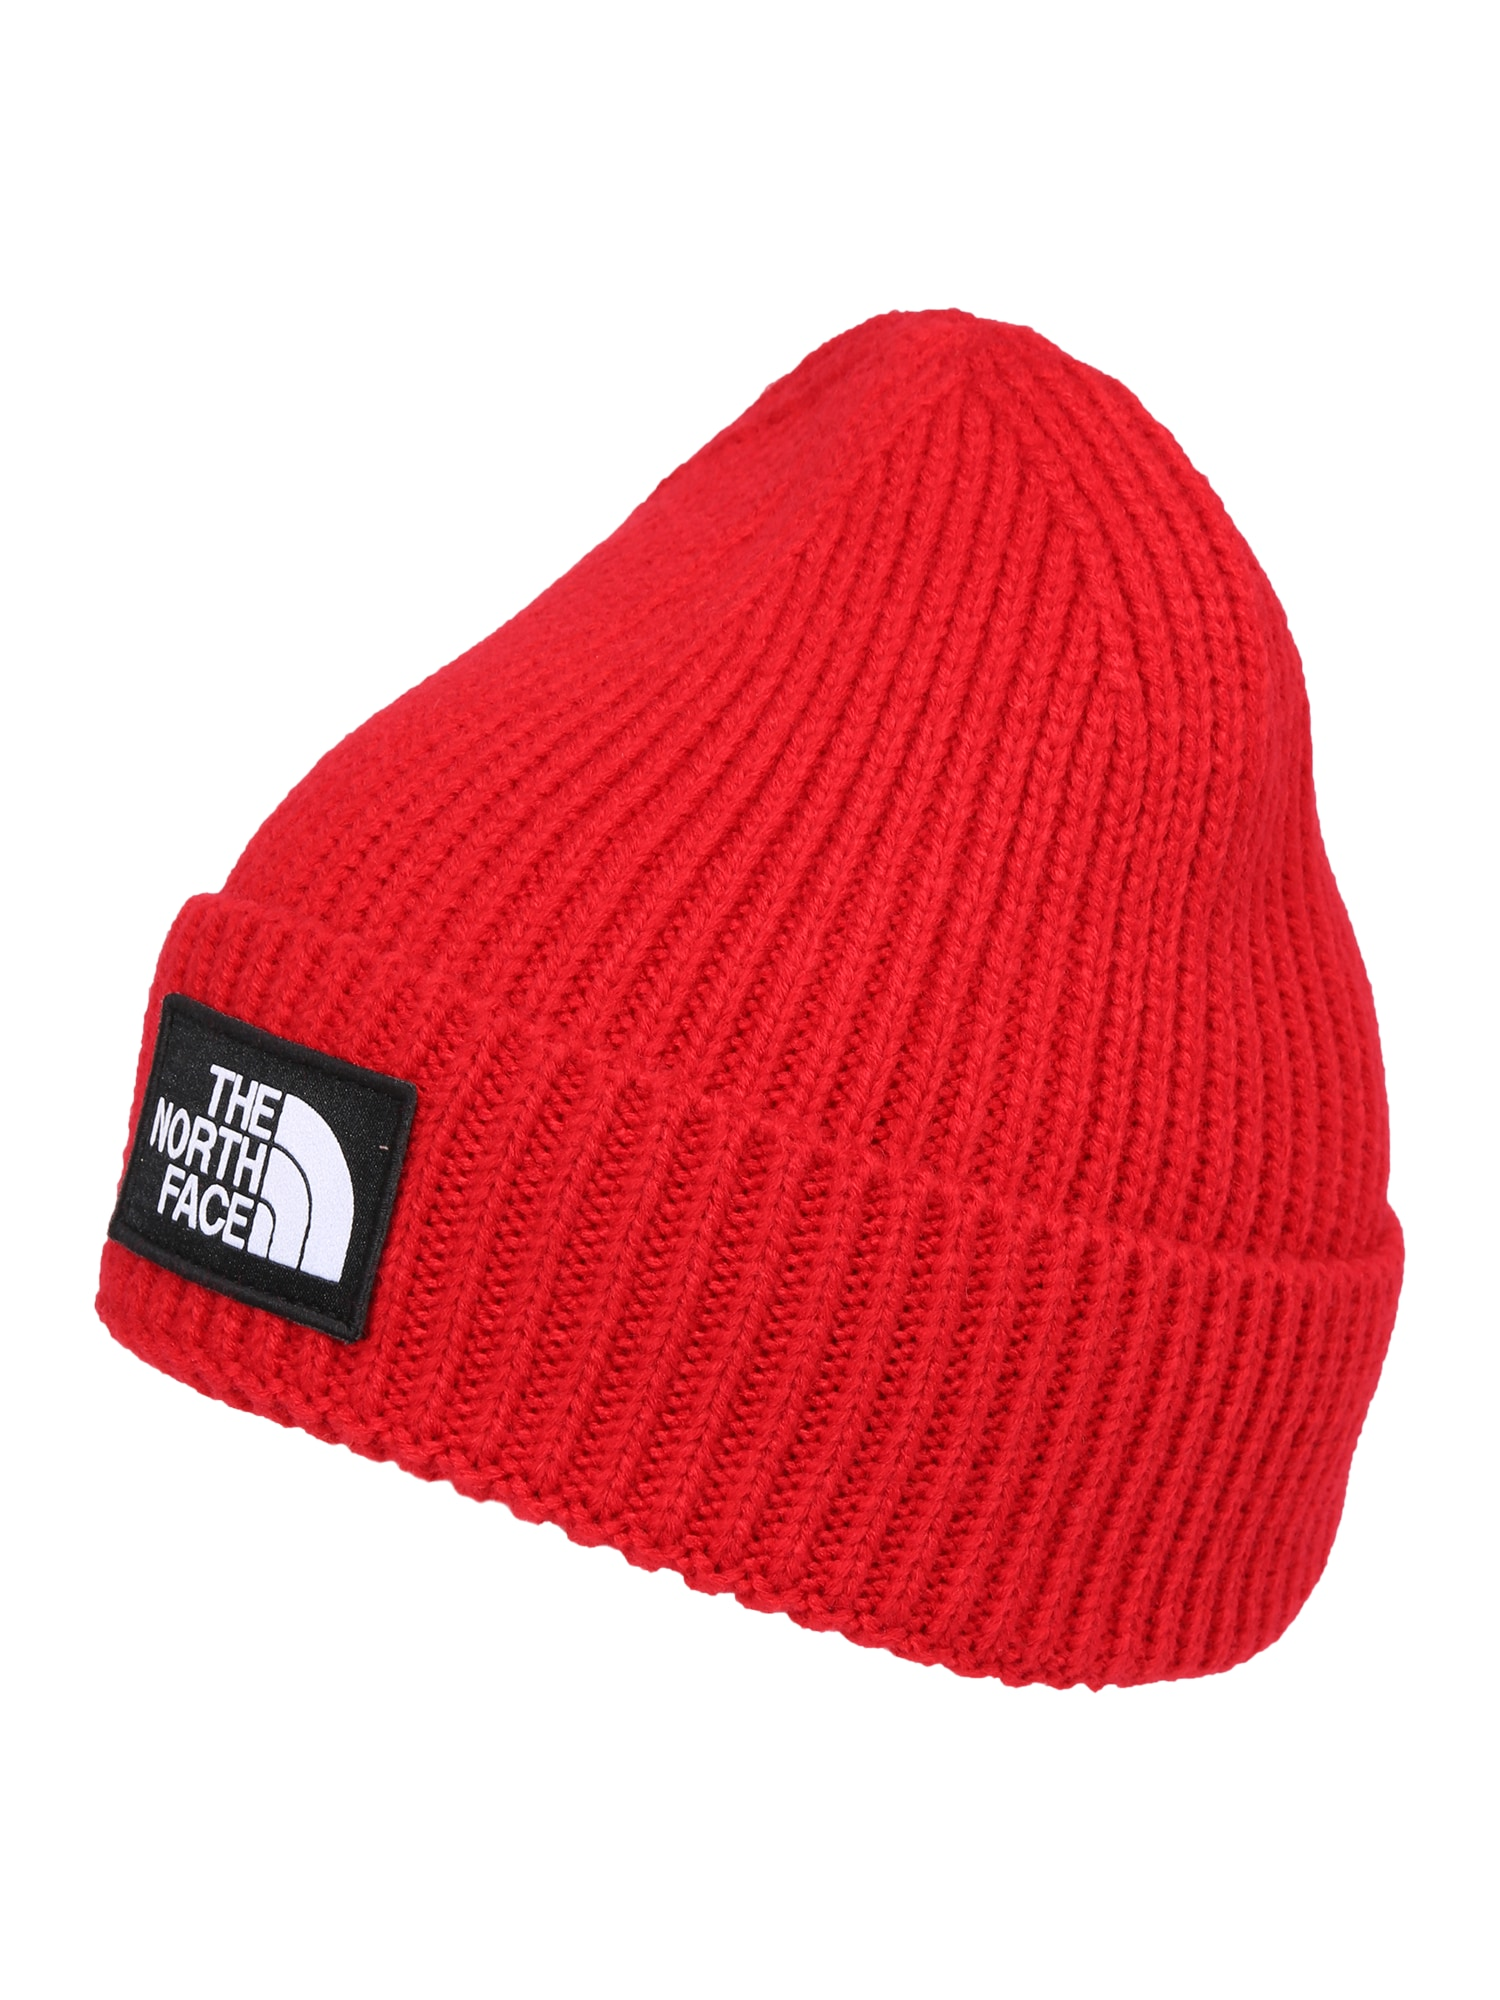 THE NORTH FACE, Heren Muts 'Logo Box Cuffed', rood